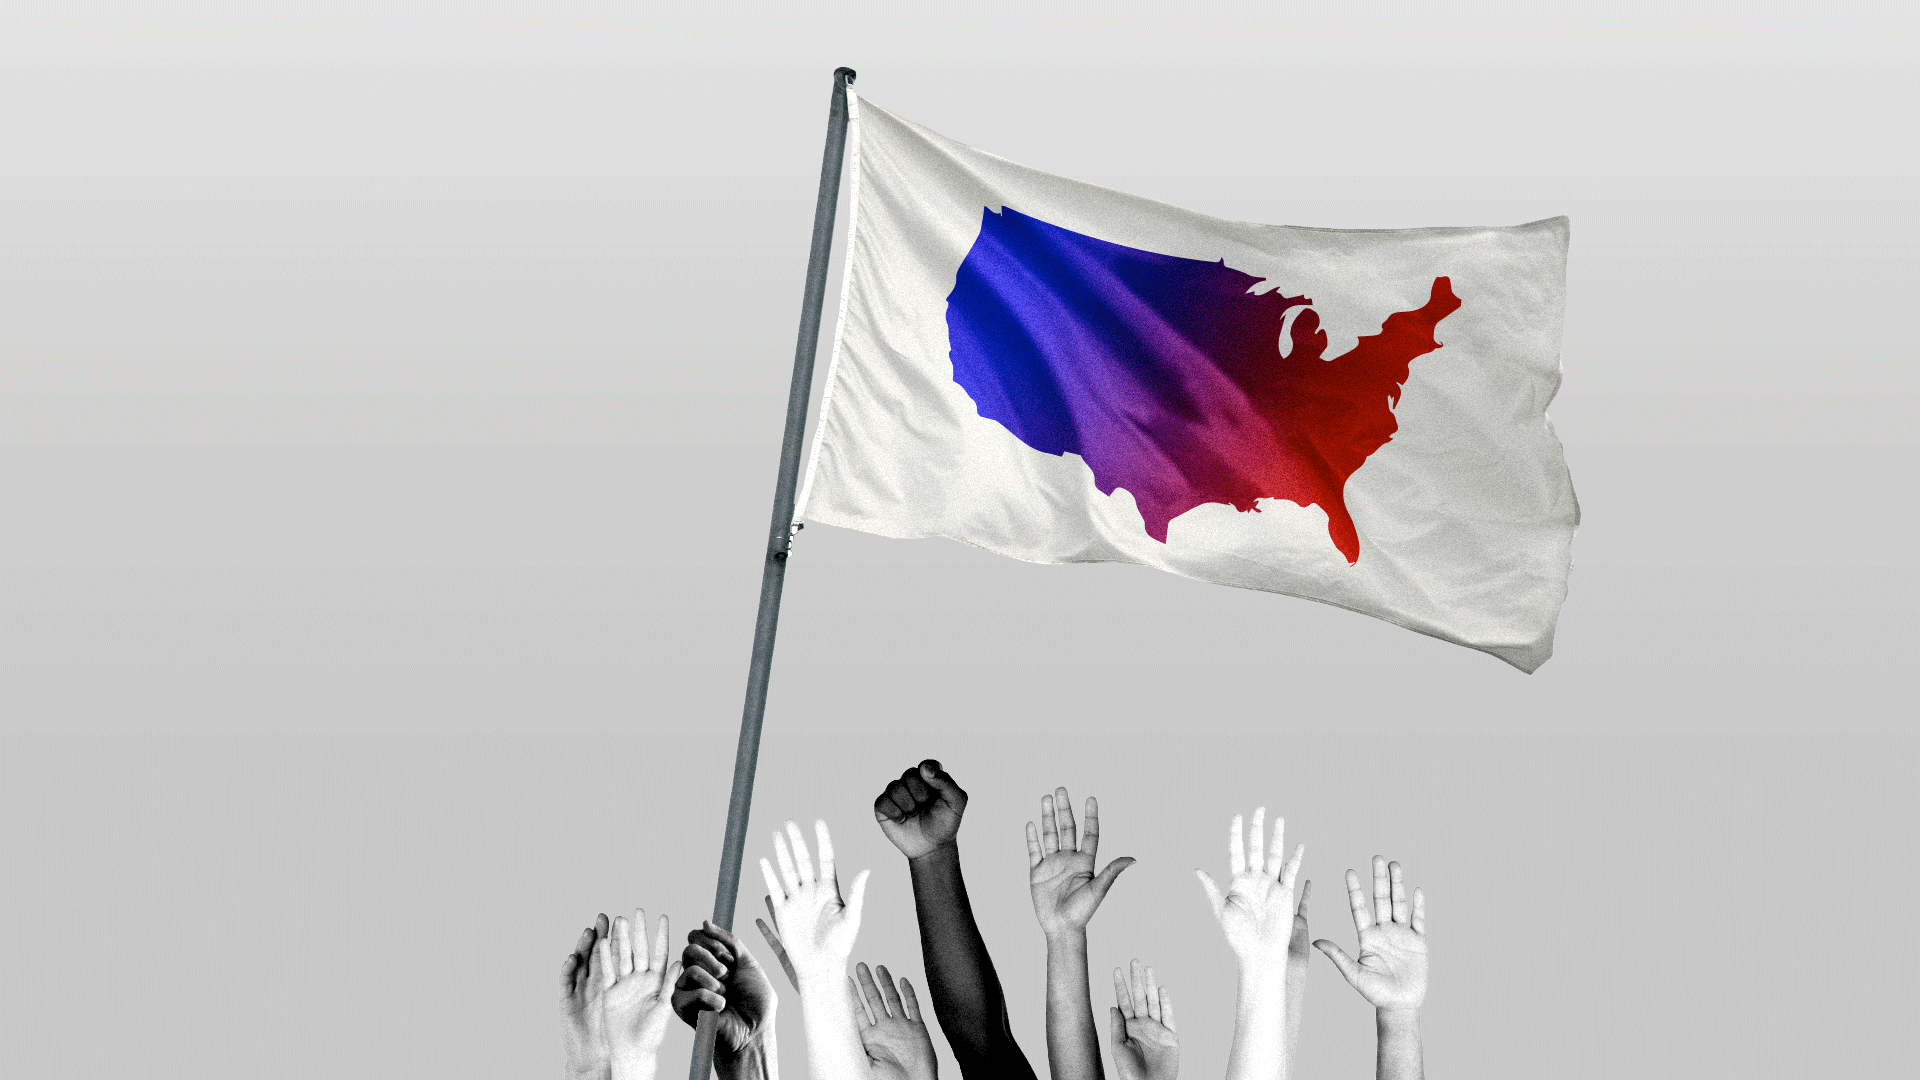 Illustration of a group of people carrying a white flag with an outline of the United States shifting colors.